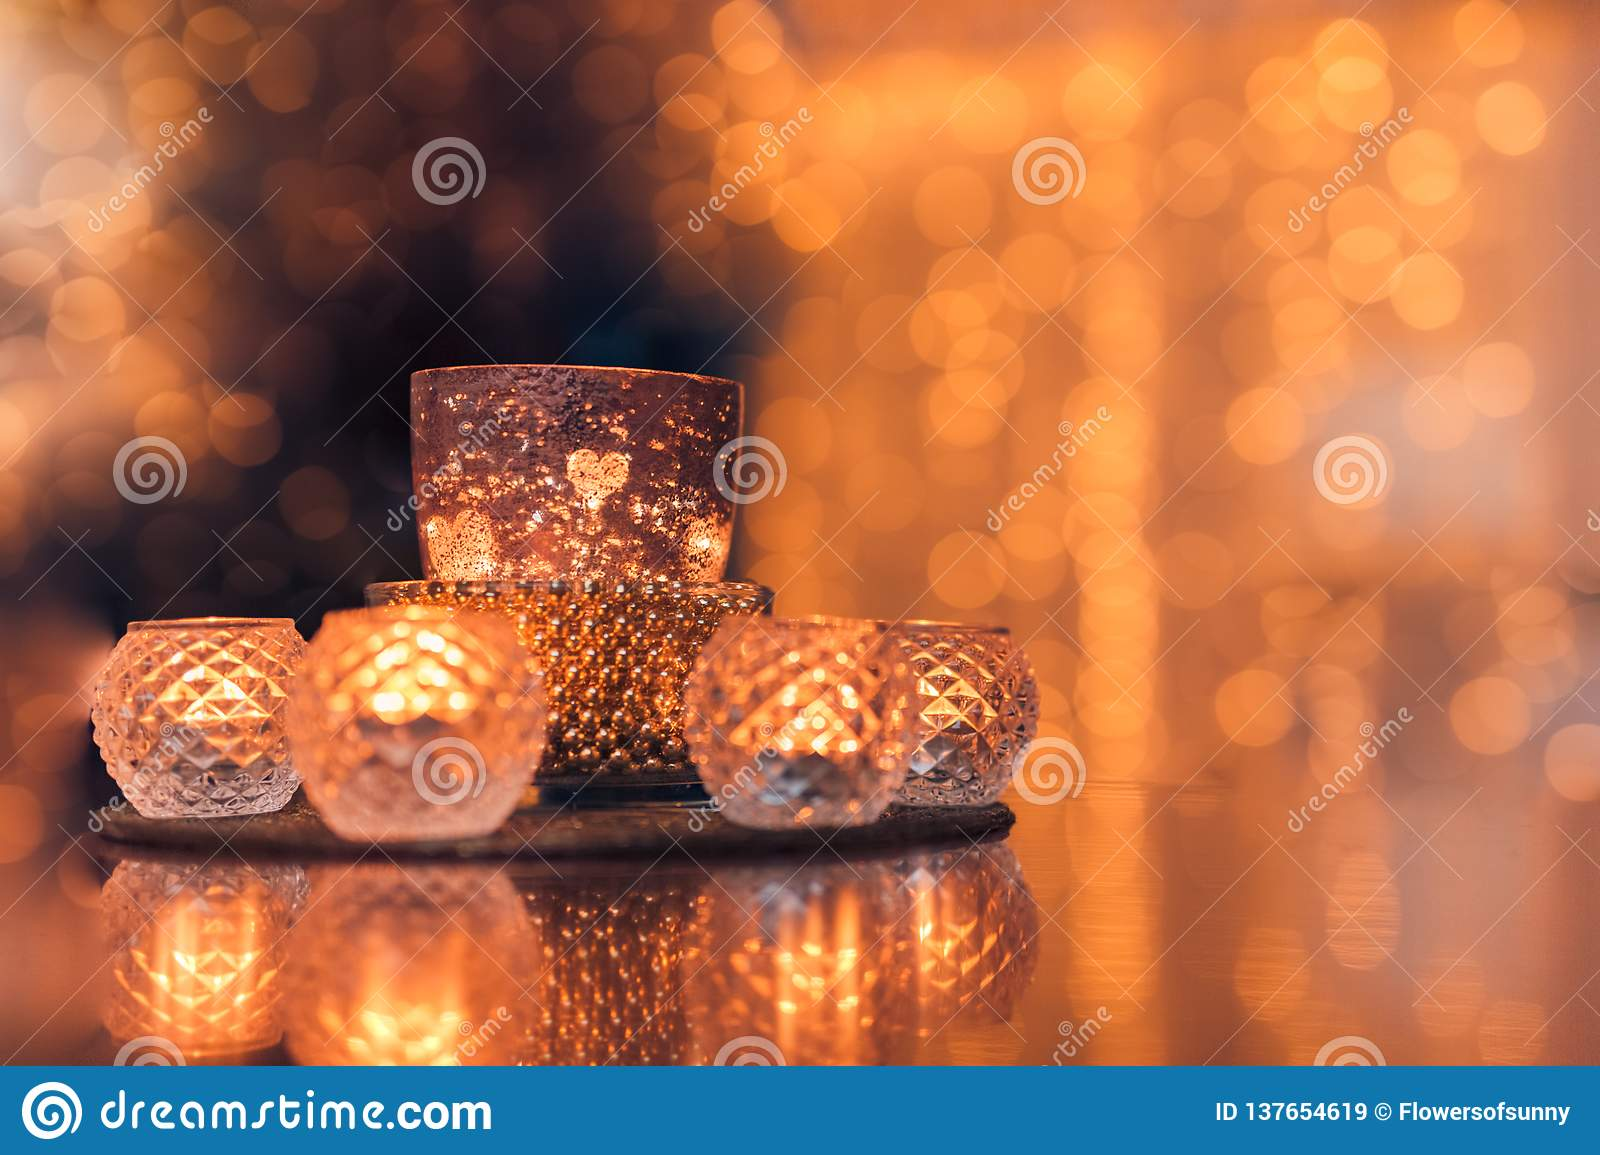 Christmas composition warm candles, dried oranges on table. Holiday, New Year, Christmas, cosiness concept. Cozy home